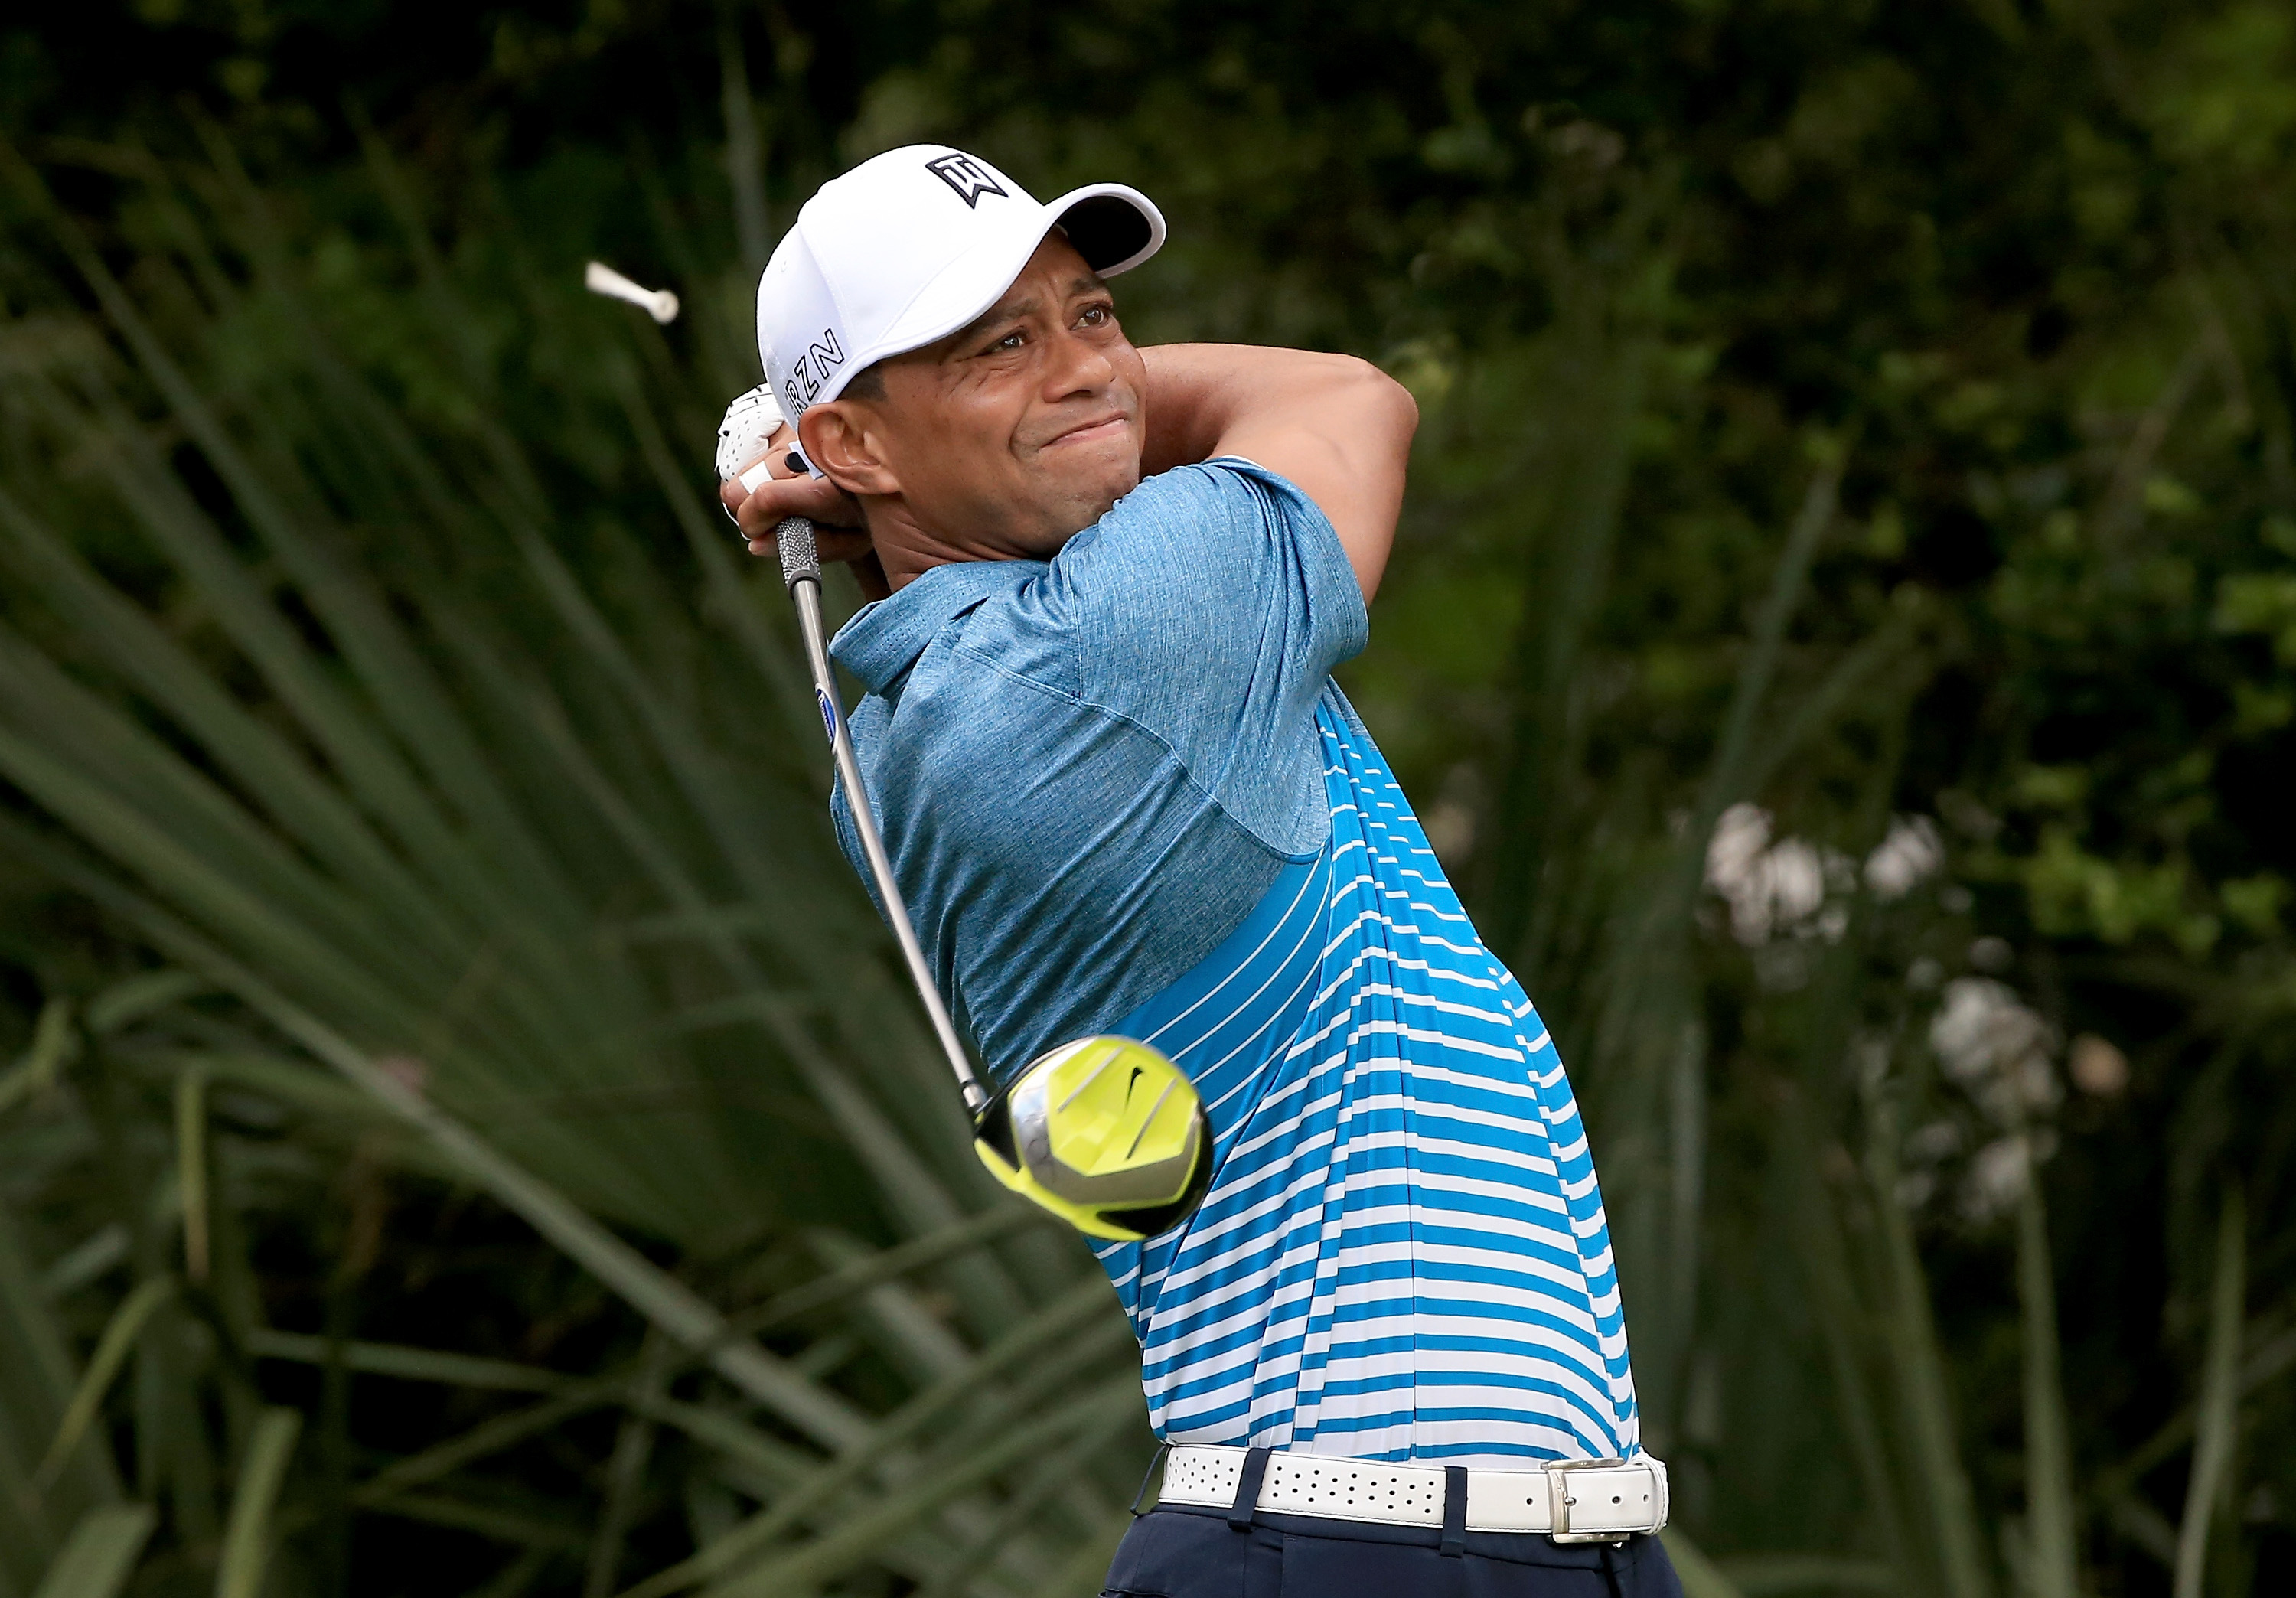 Woods's last start was at the Masters where he finished tied 17th (Photo: Getty Images)